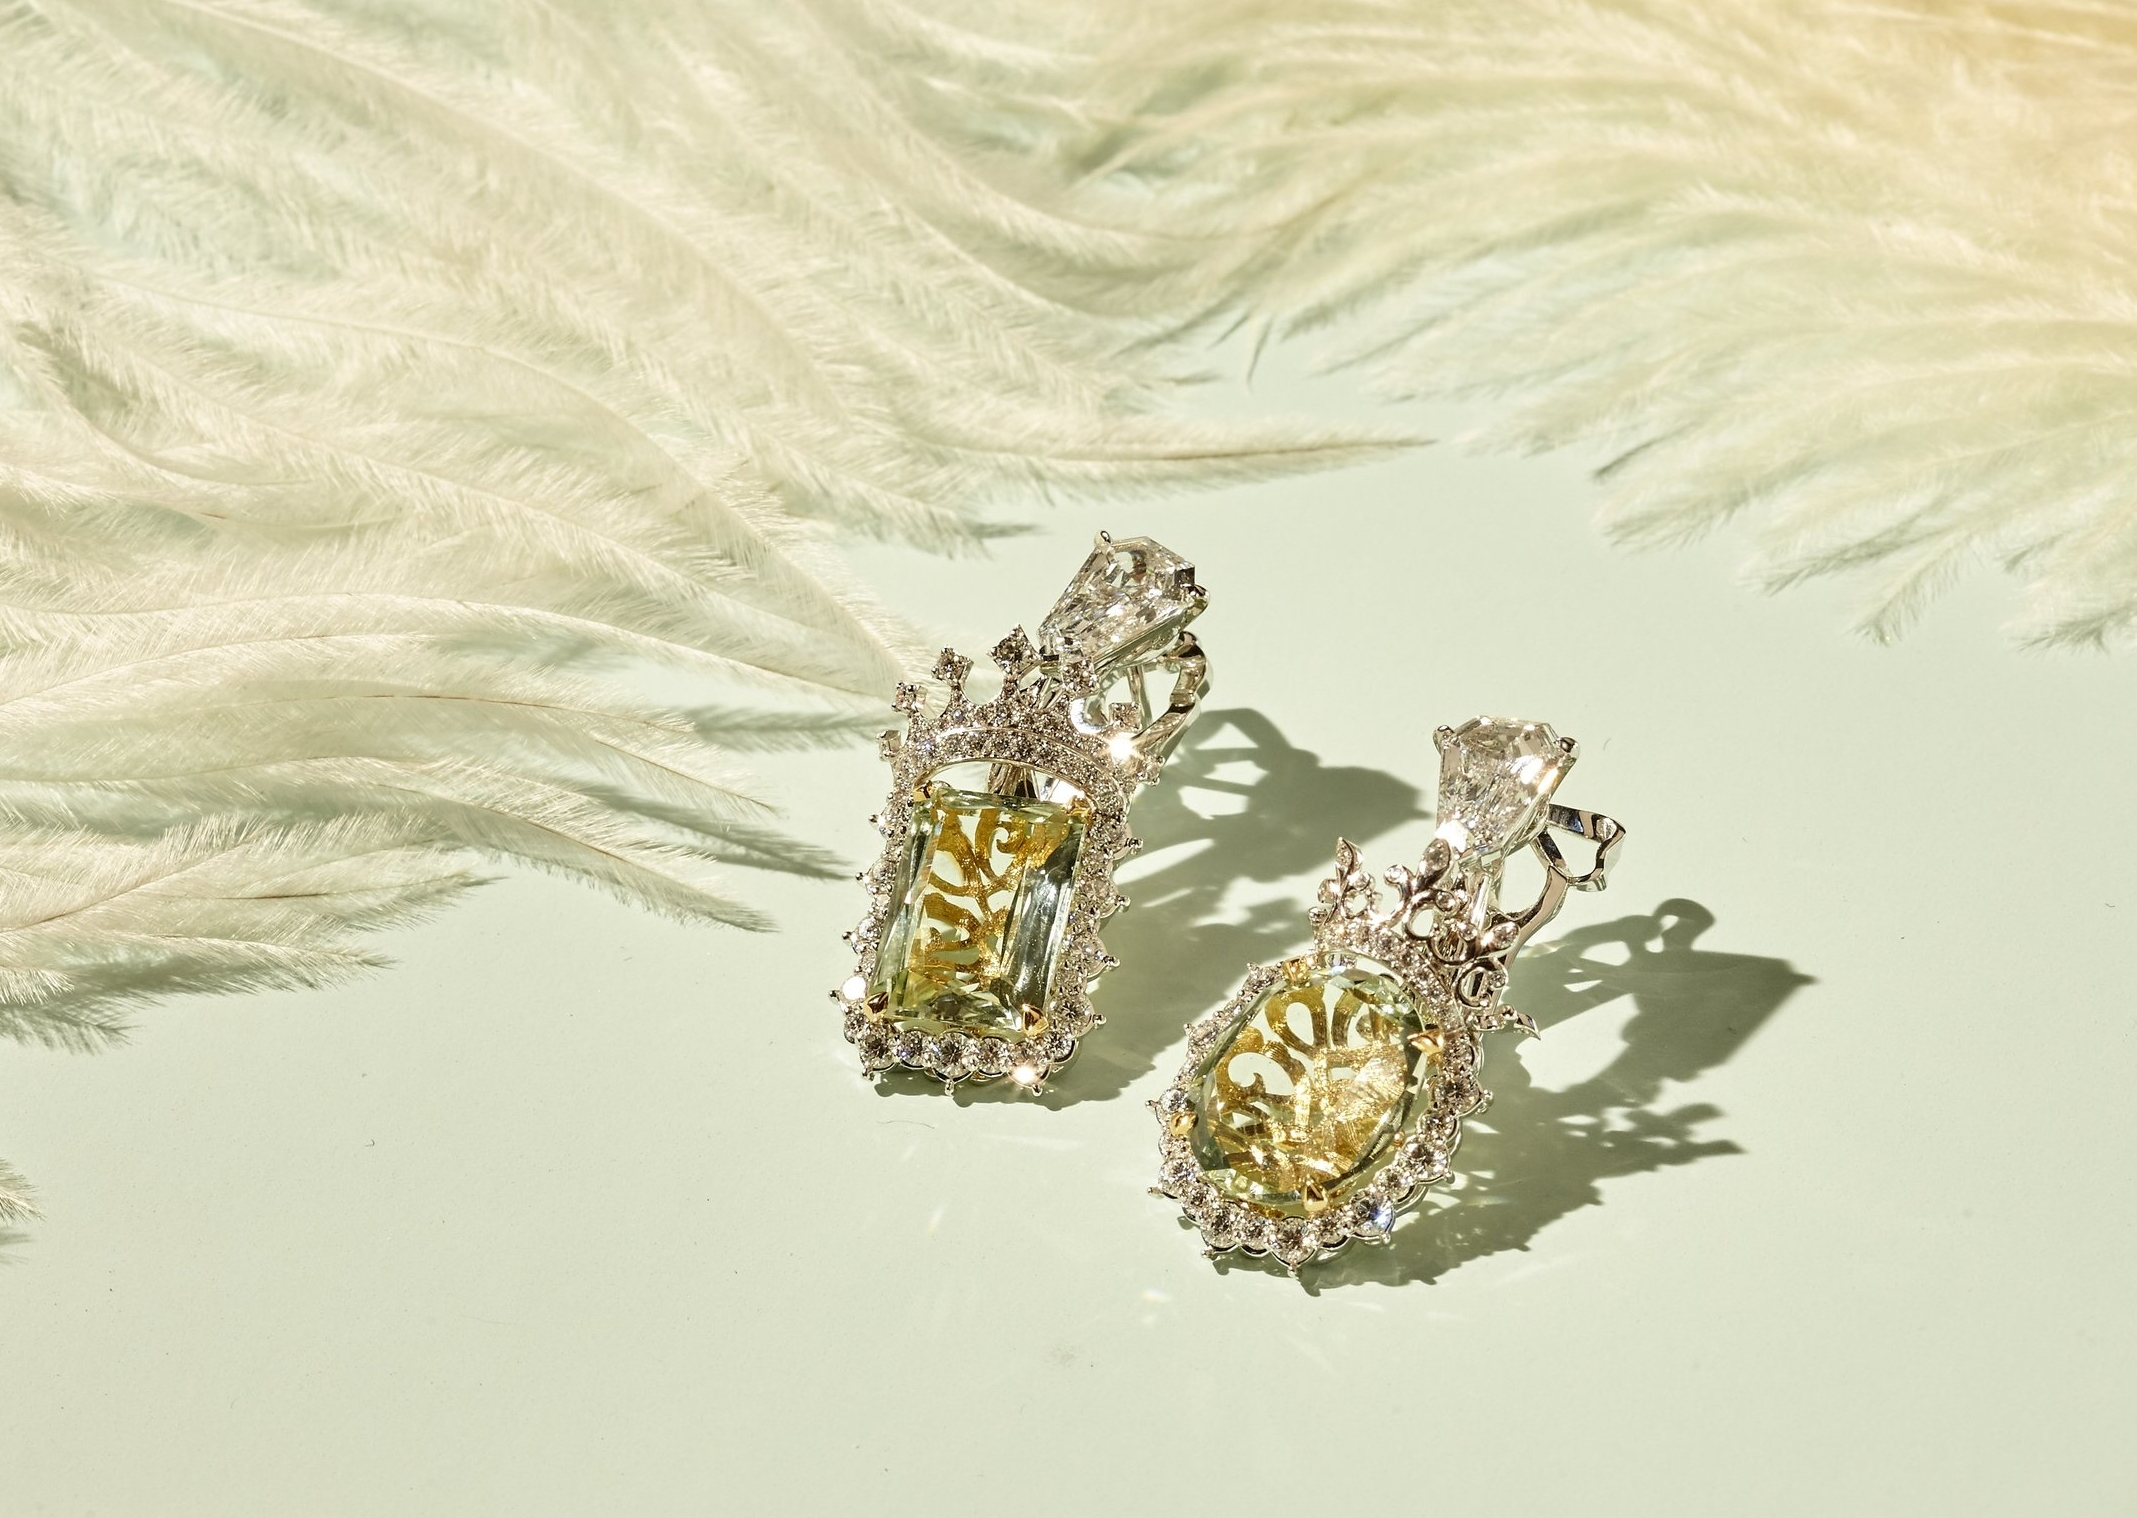 King and Queen Cachette Beryl Vert Earrings, Dior Fine Jewelry, PHOTO: F. Martin Ramin for WSJ